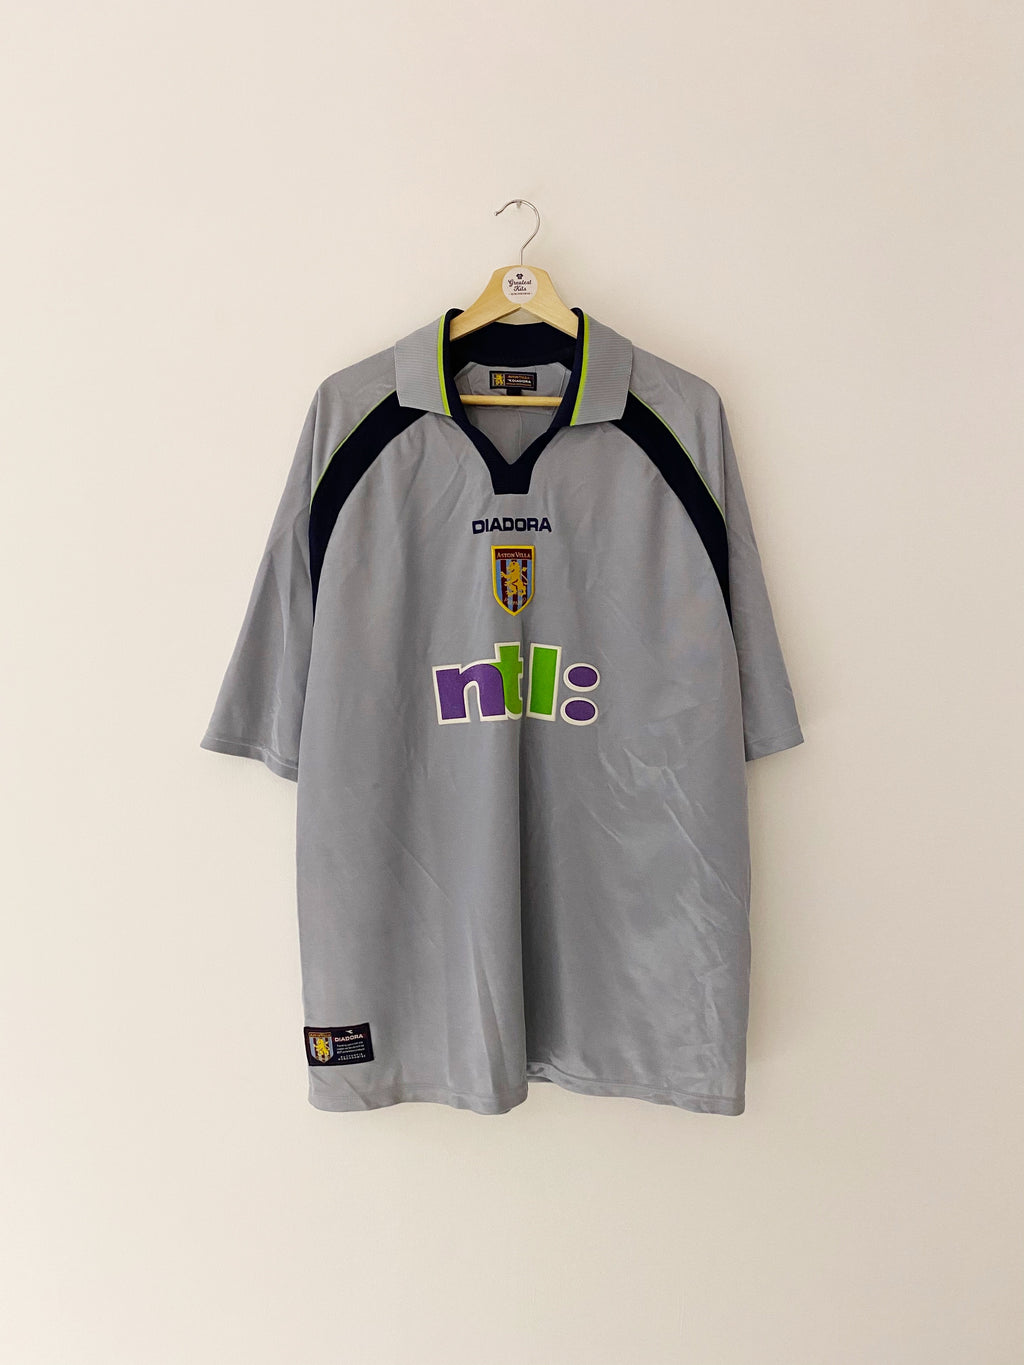 2001/02 Aston Villa Away Shirt (XL) 8.5/10